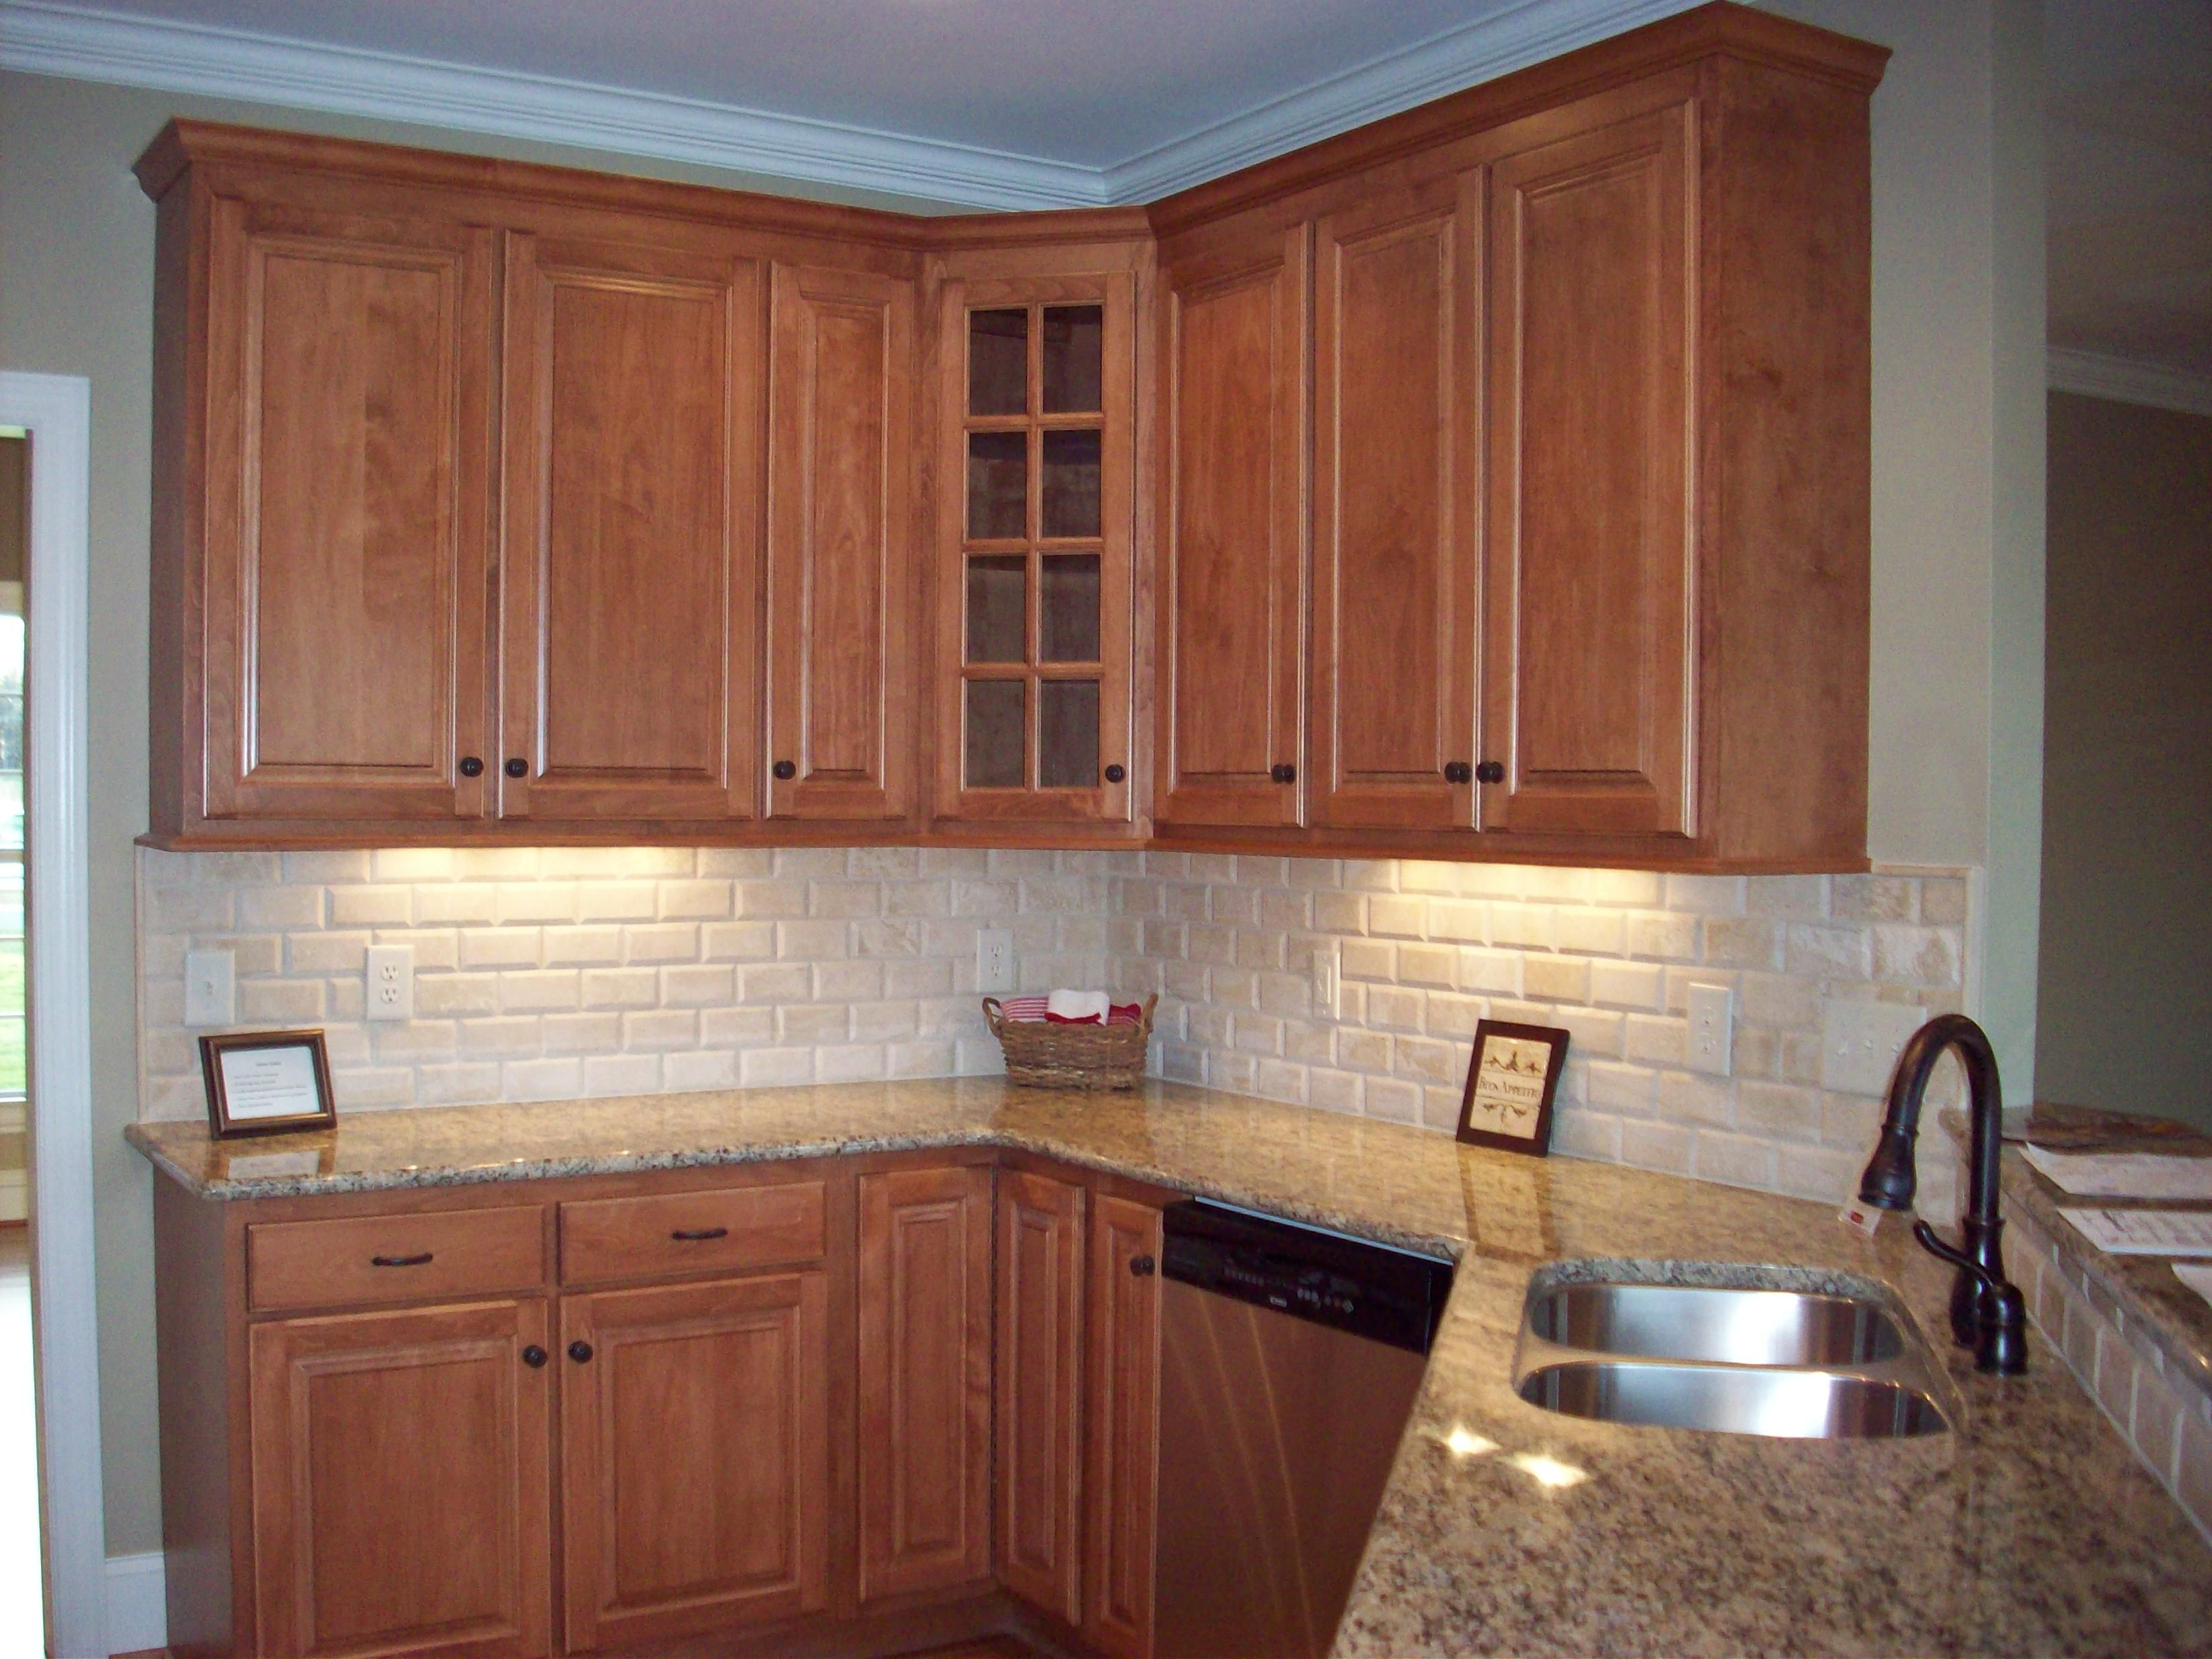 maple cabinets beveled tile backslash classic and cost efficient modern farmhouse kitchens on farmhouse kitchen maple cabinets id=50520